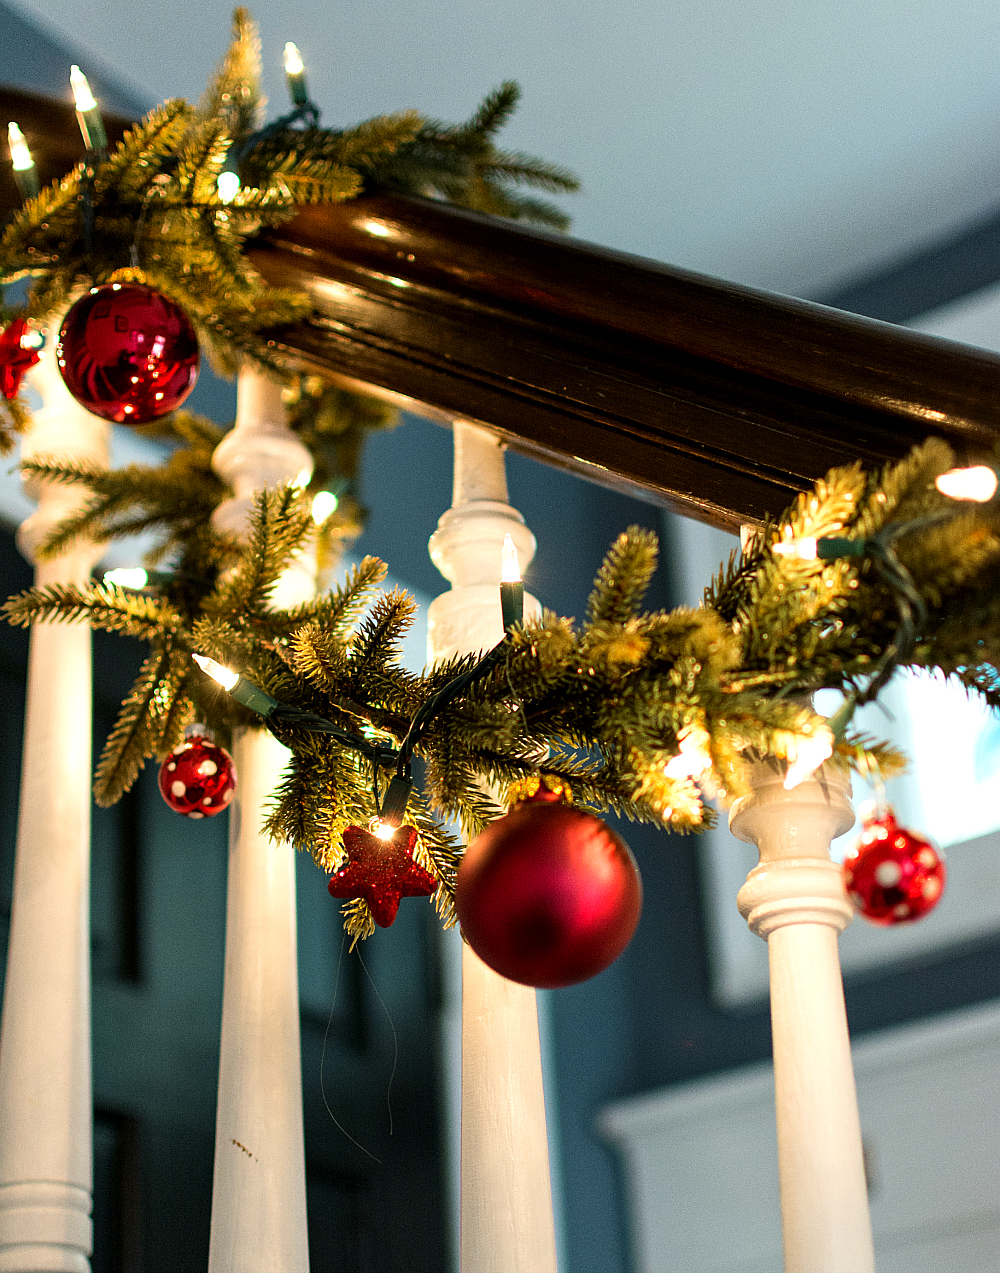 How To Decorate Garland with Ornaments